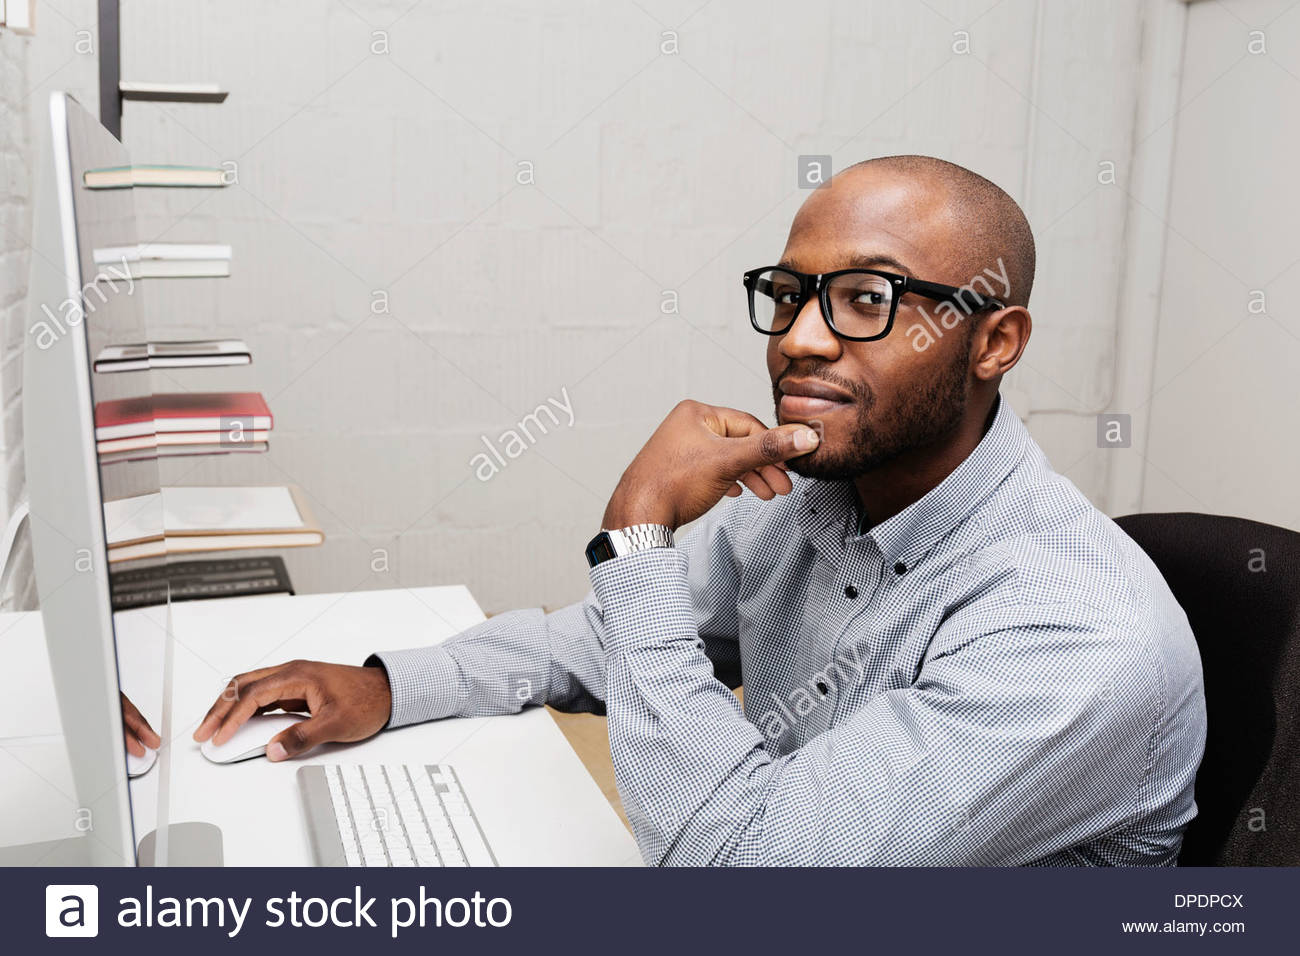 Portrait of young man using computer in design office - Stock Image